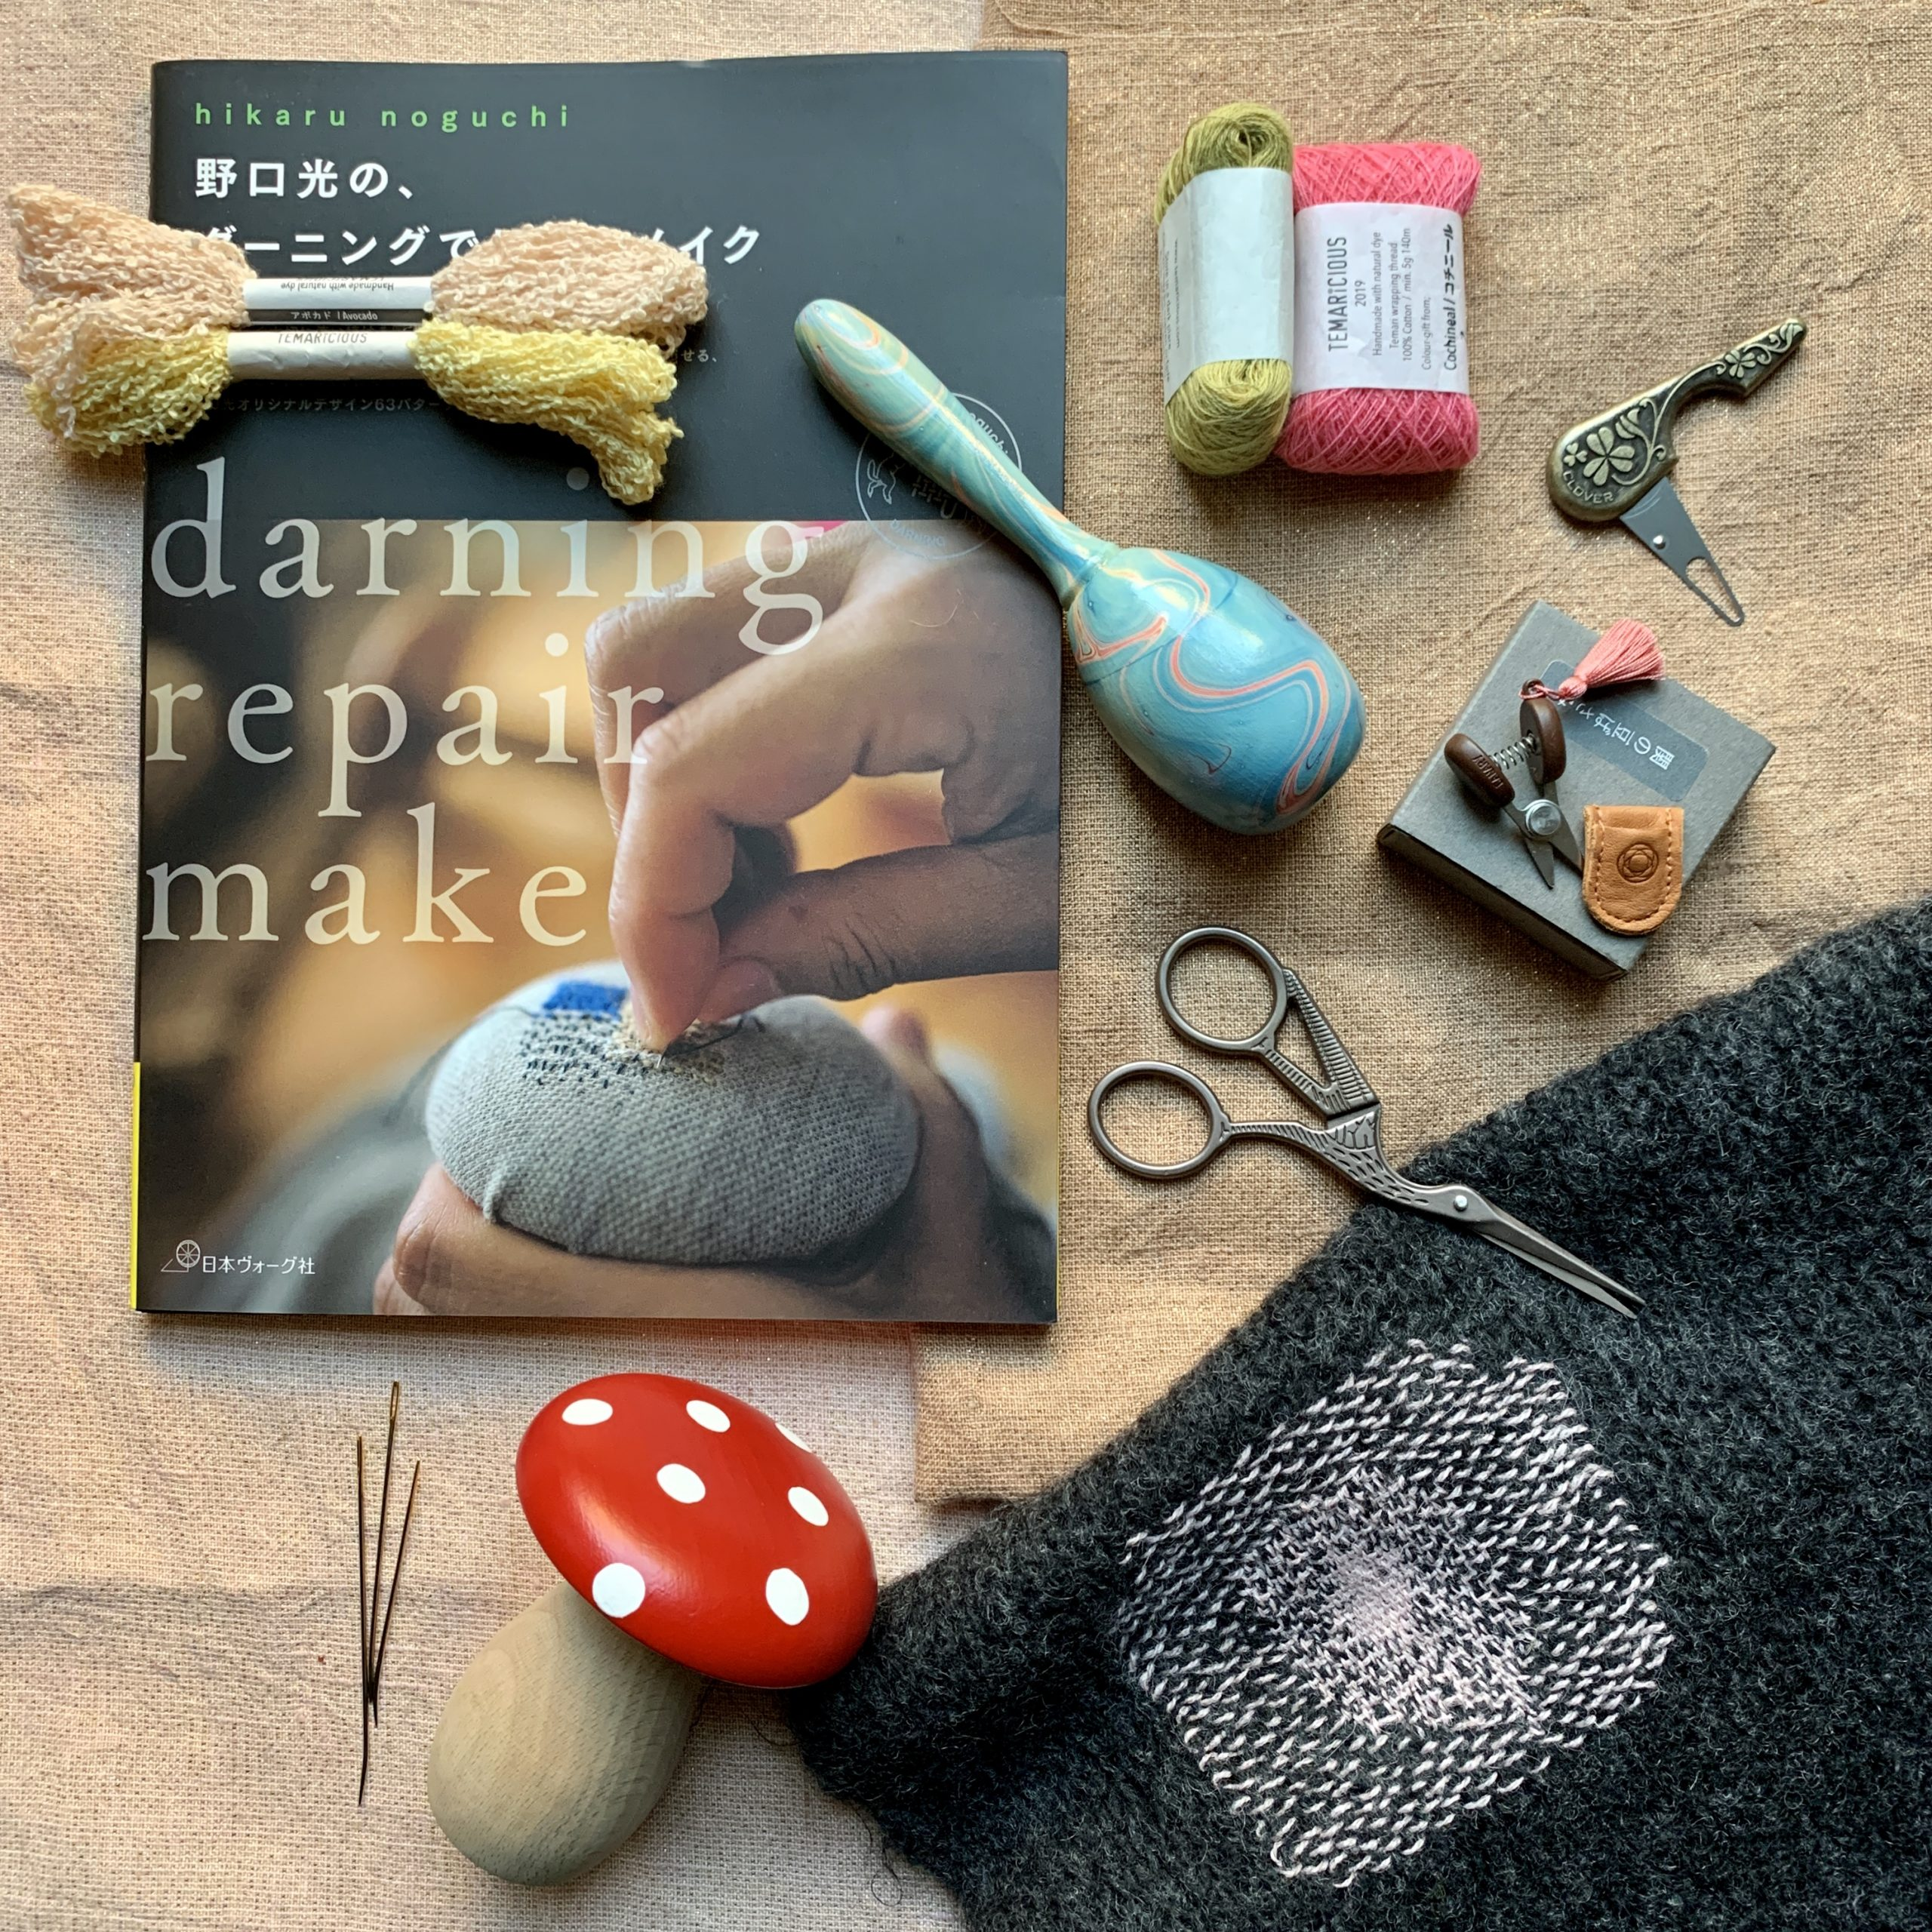 Christmas gifts for darning, embroidery and haberdashery lovers